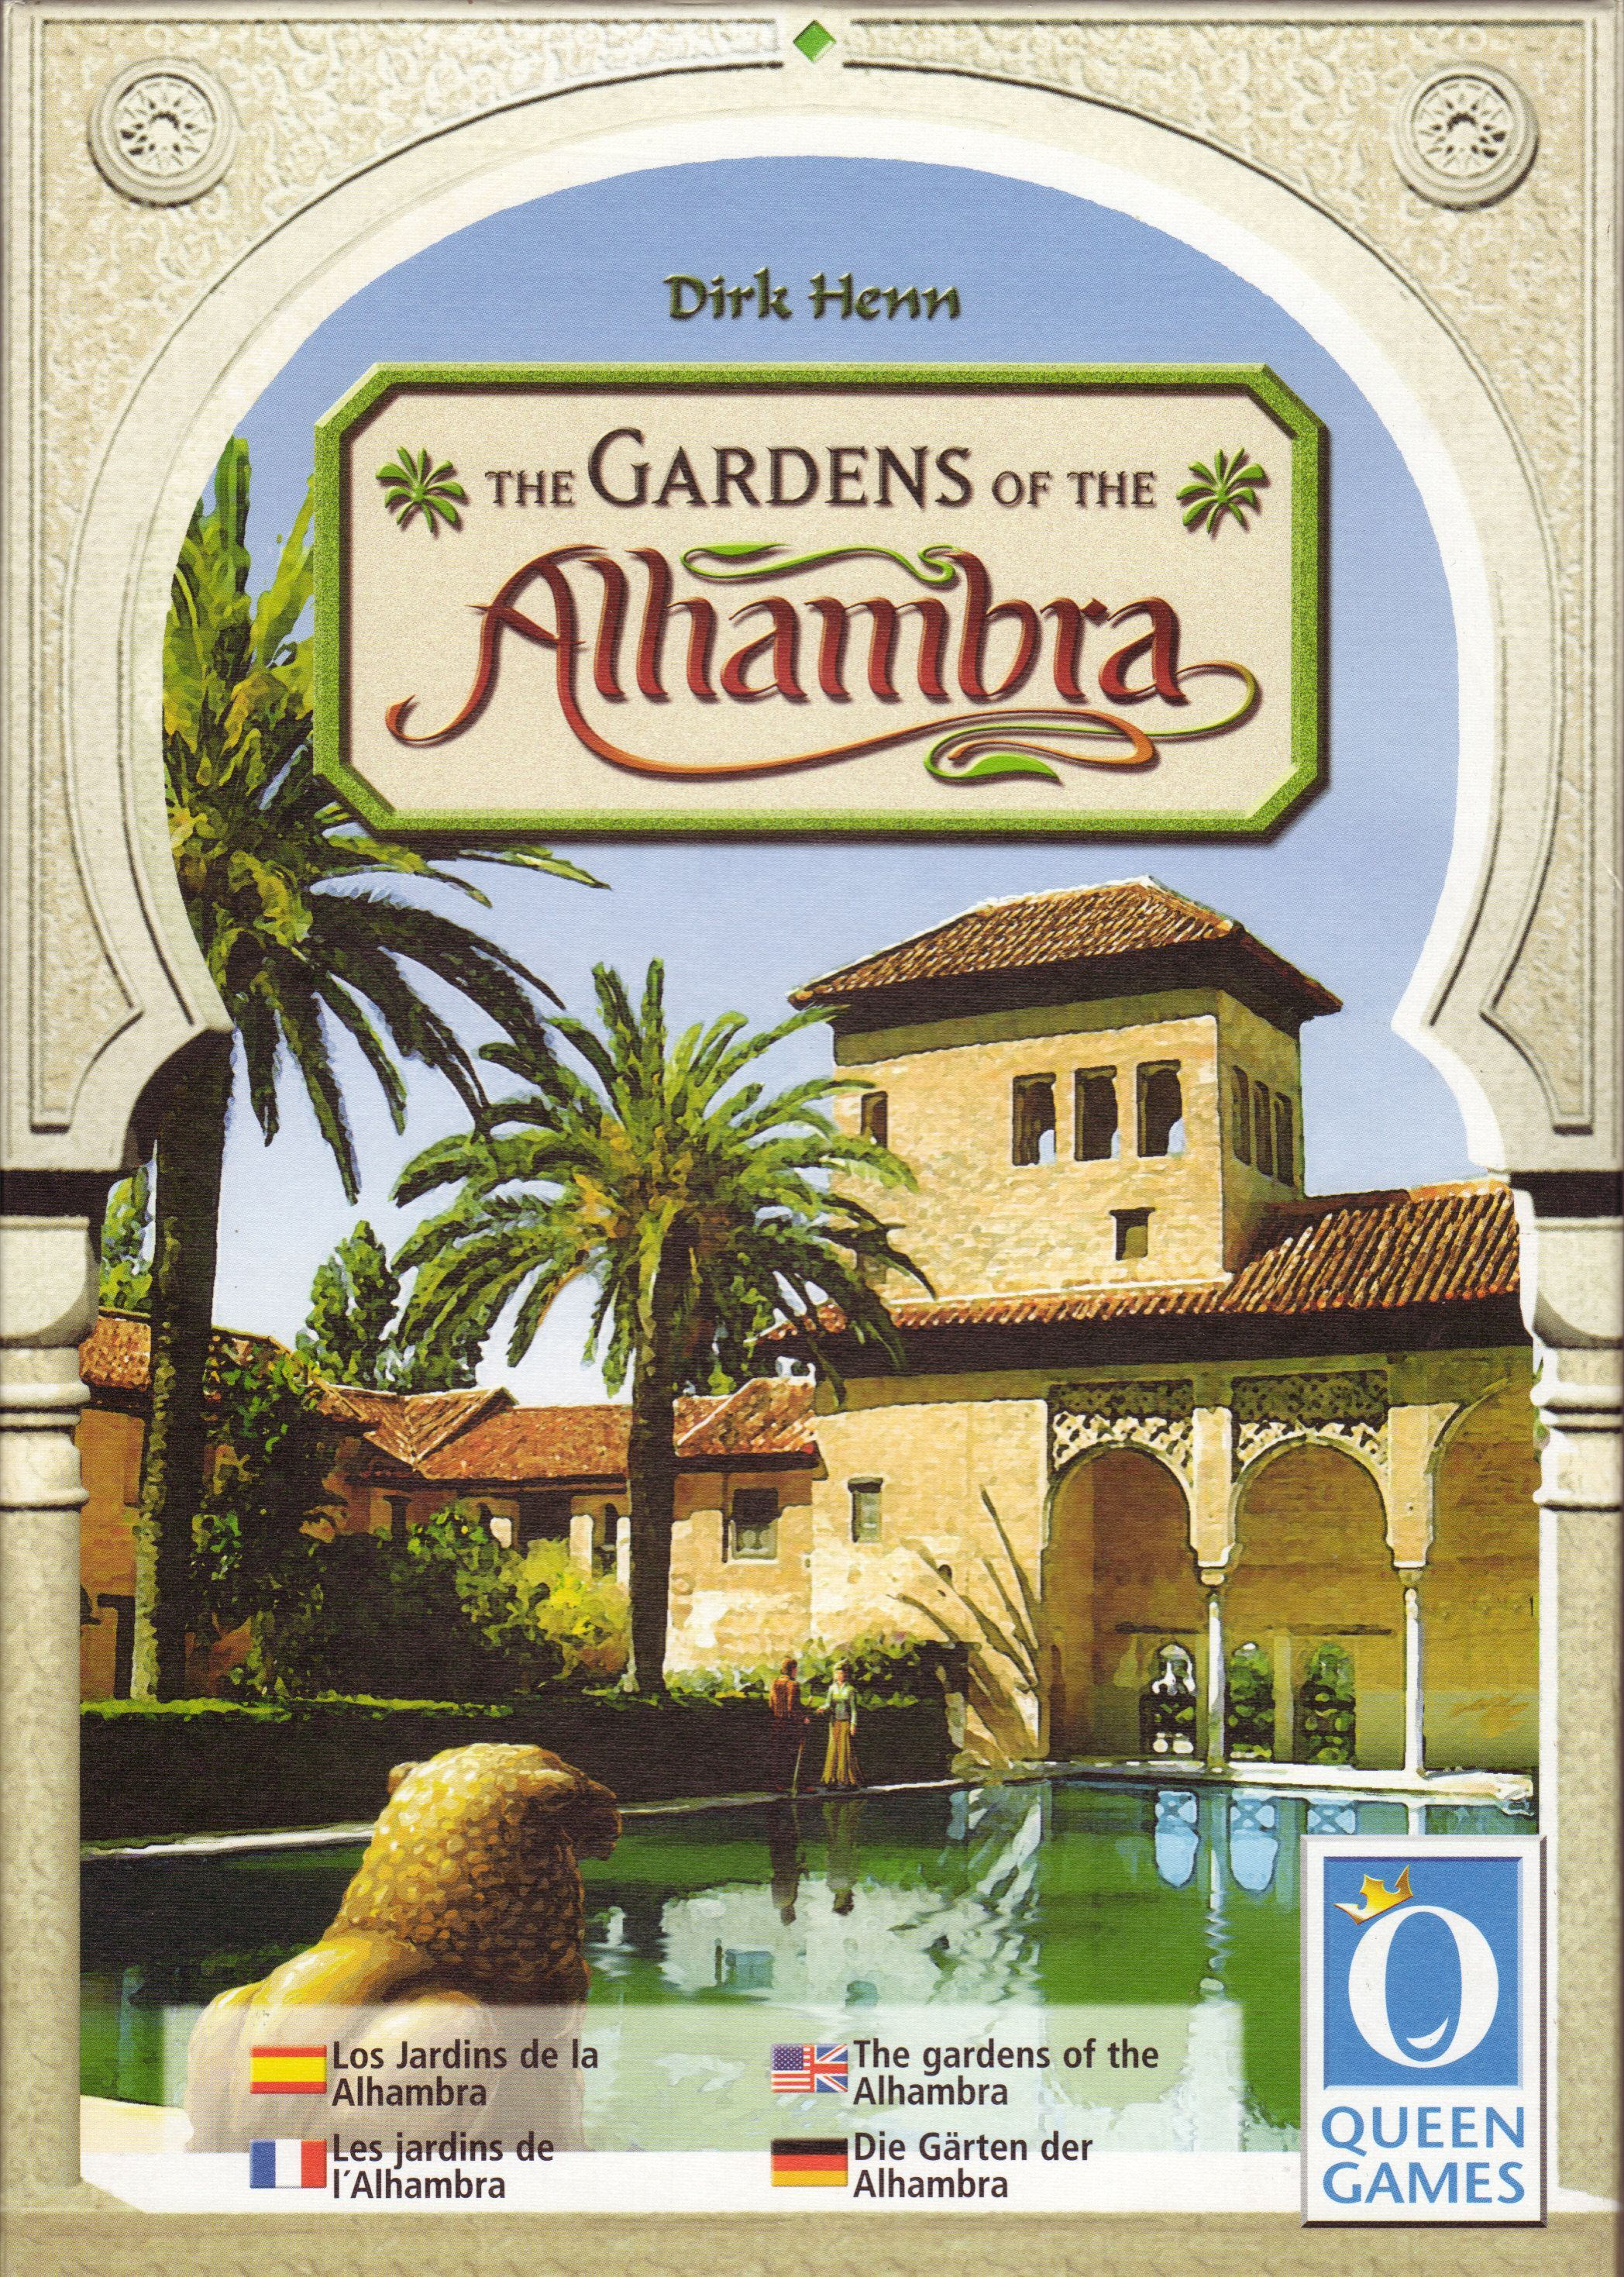 The Gardens of the Alhambra